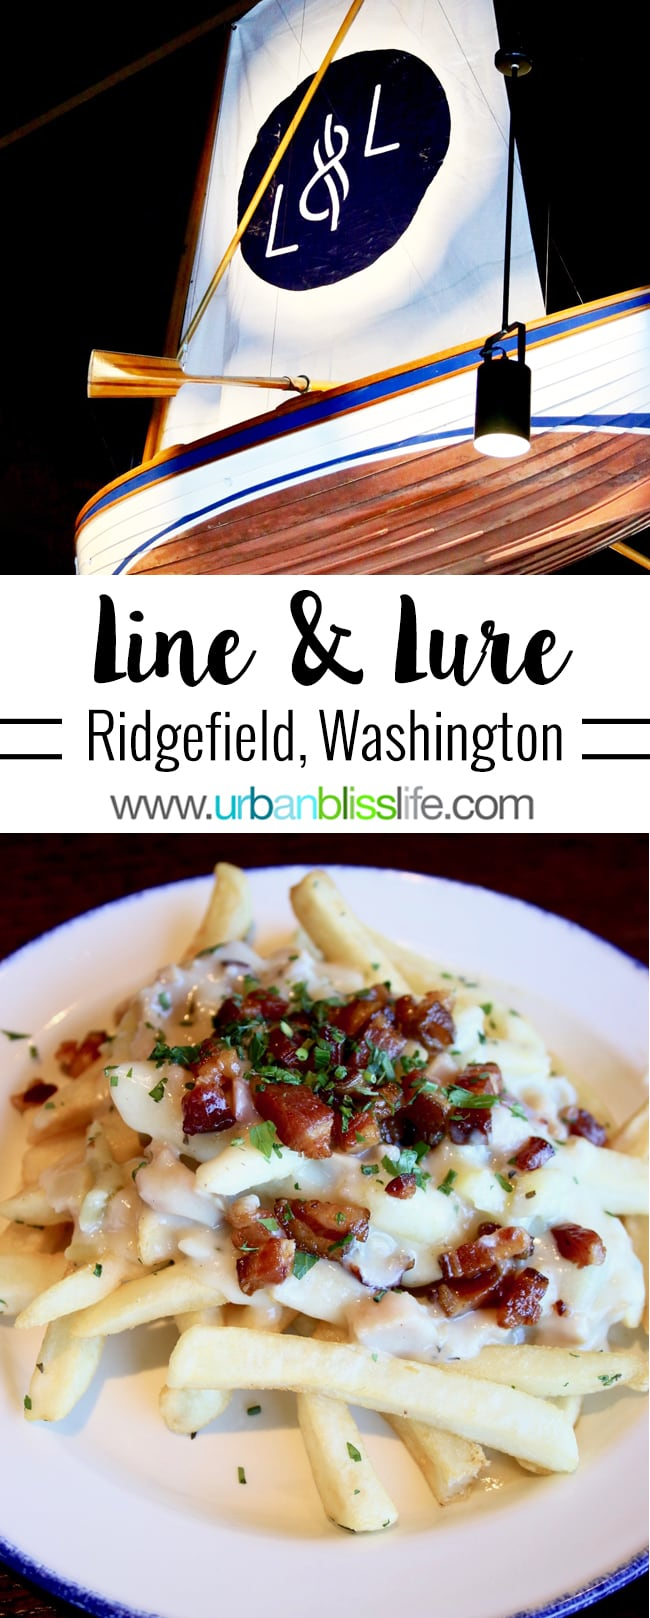 Line and Lure restaurant Ridgefield Washington, restaurant review on UrbanBlissLife.com